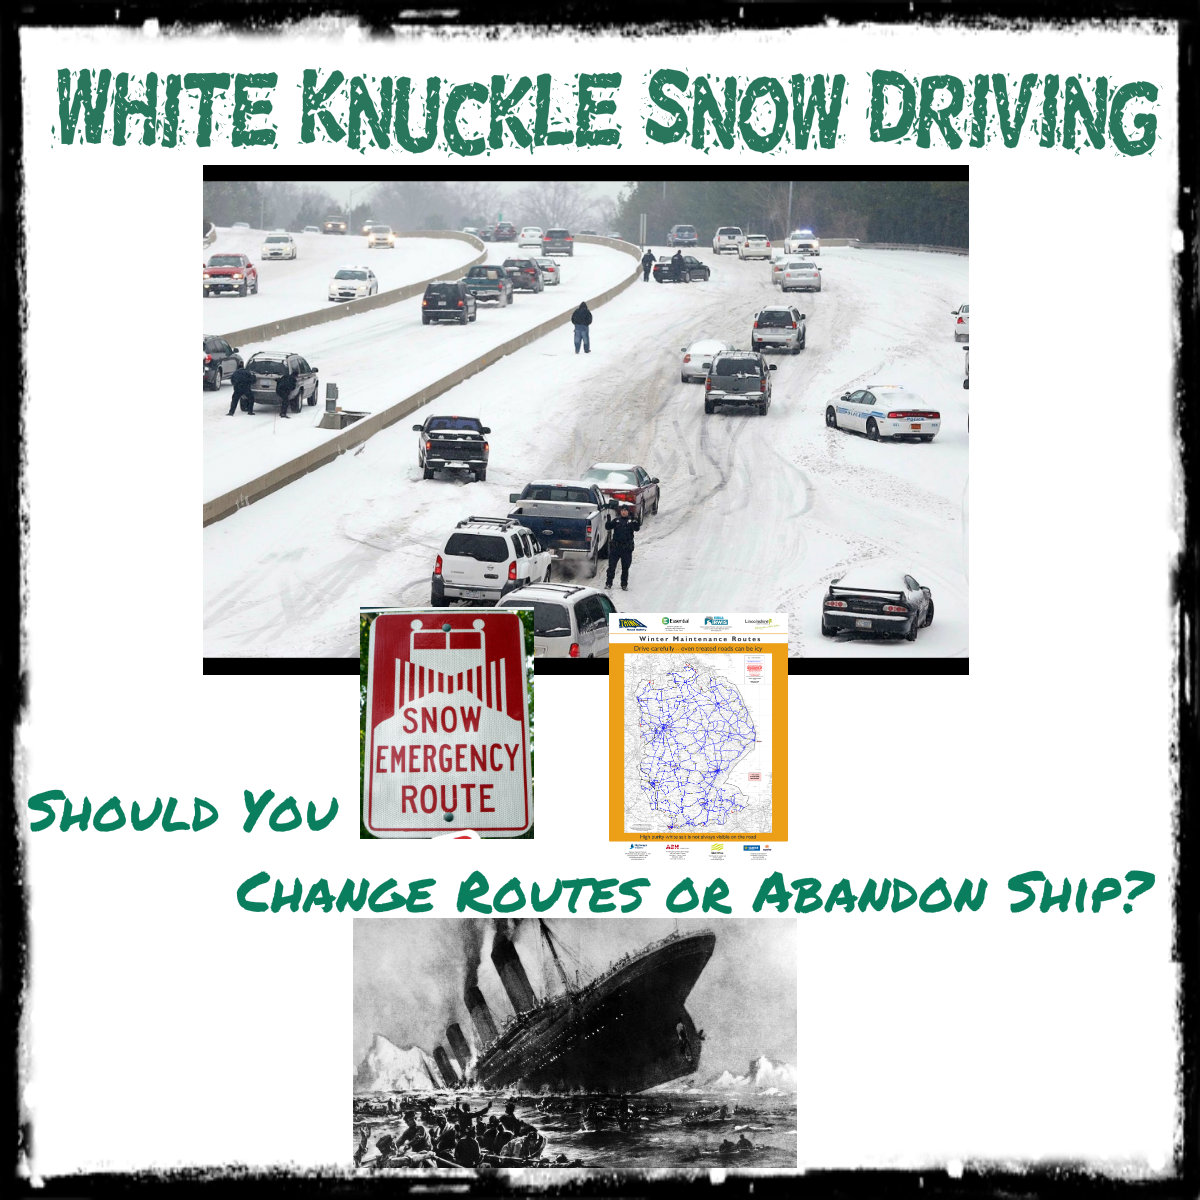 White Knuckle Snow Driving (1)